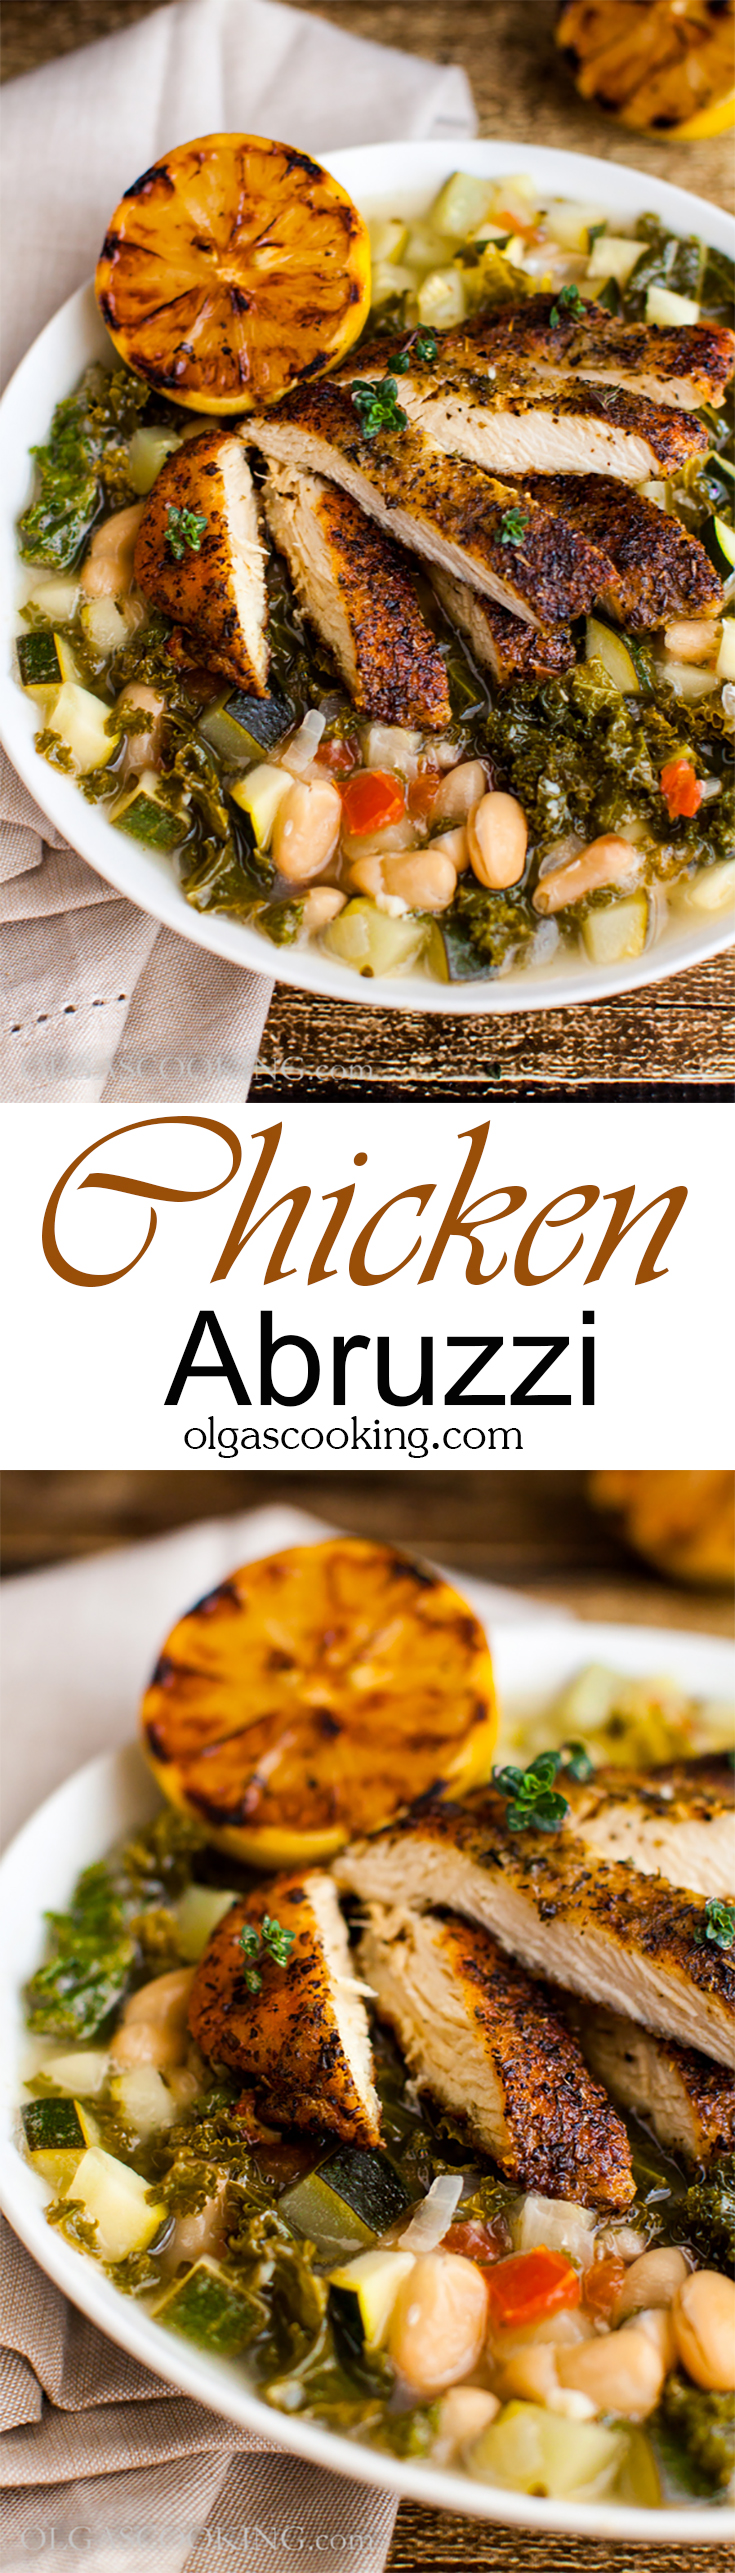 Olive Garden copycat Chicken Abruzzi recipe. Healthy and delish!